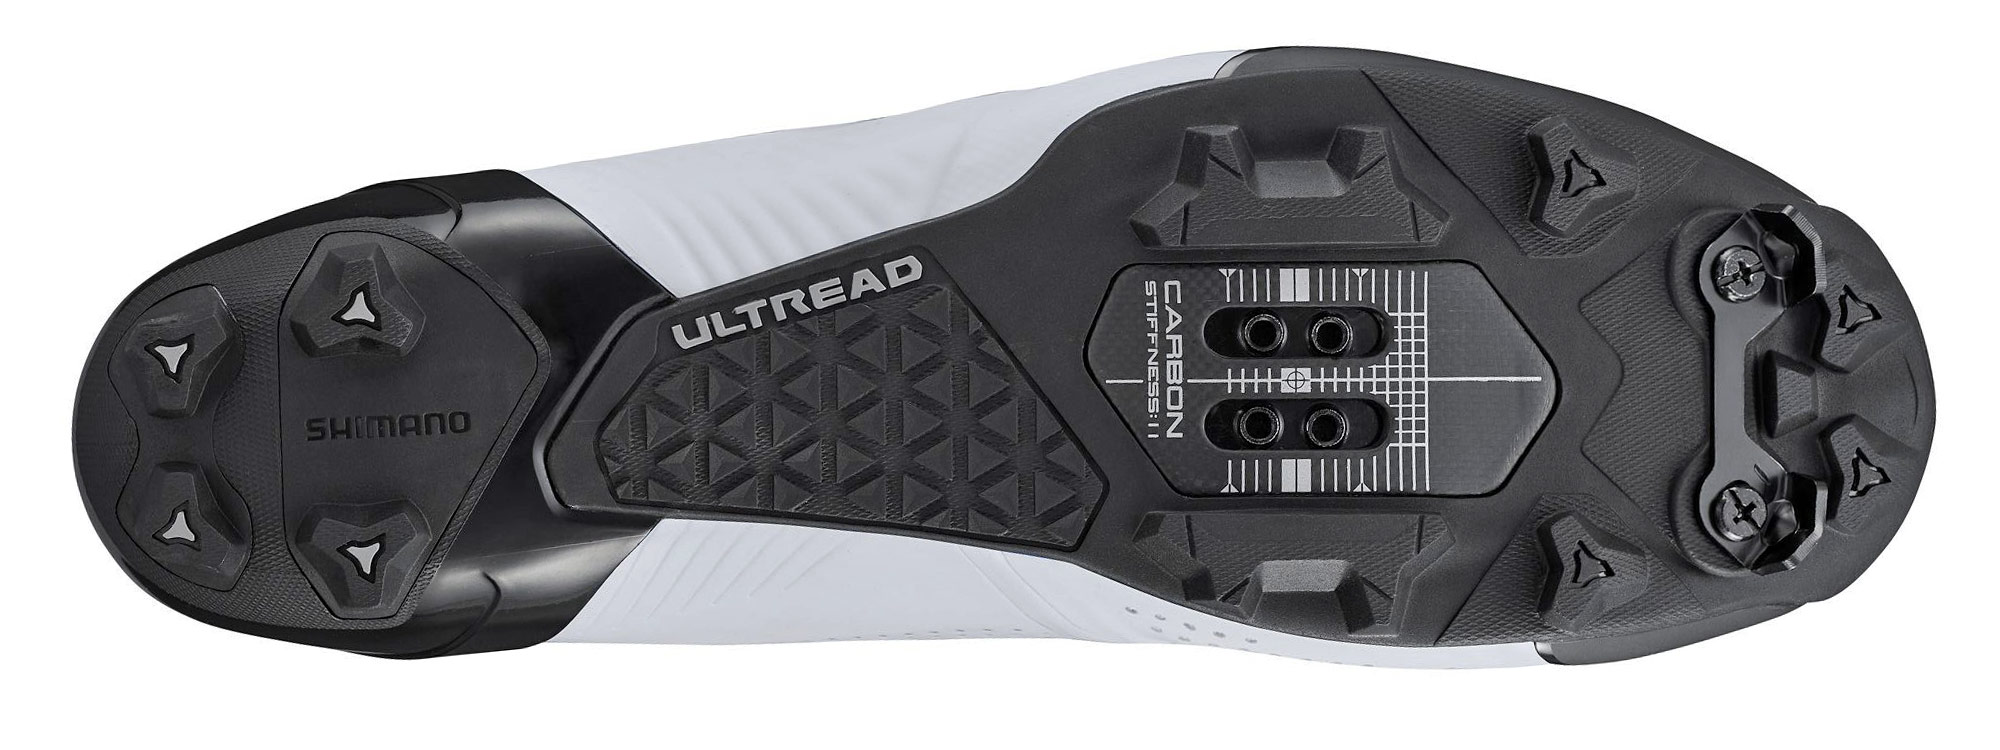 Shimano S-Phyre XC902 MTB shoes, next-gen XC9 cross-country mountain bike shoe,sole and talon toe spikes